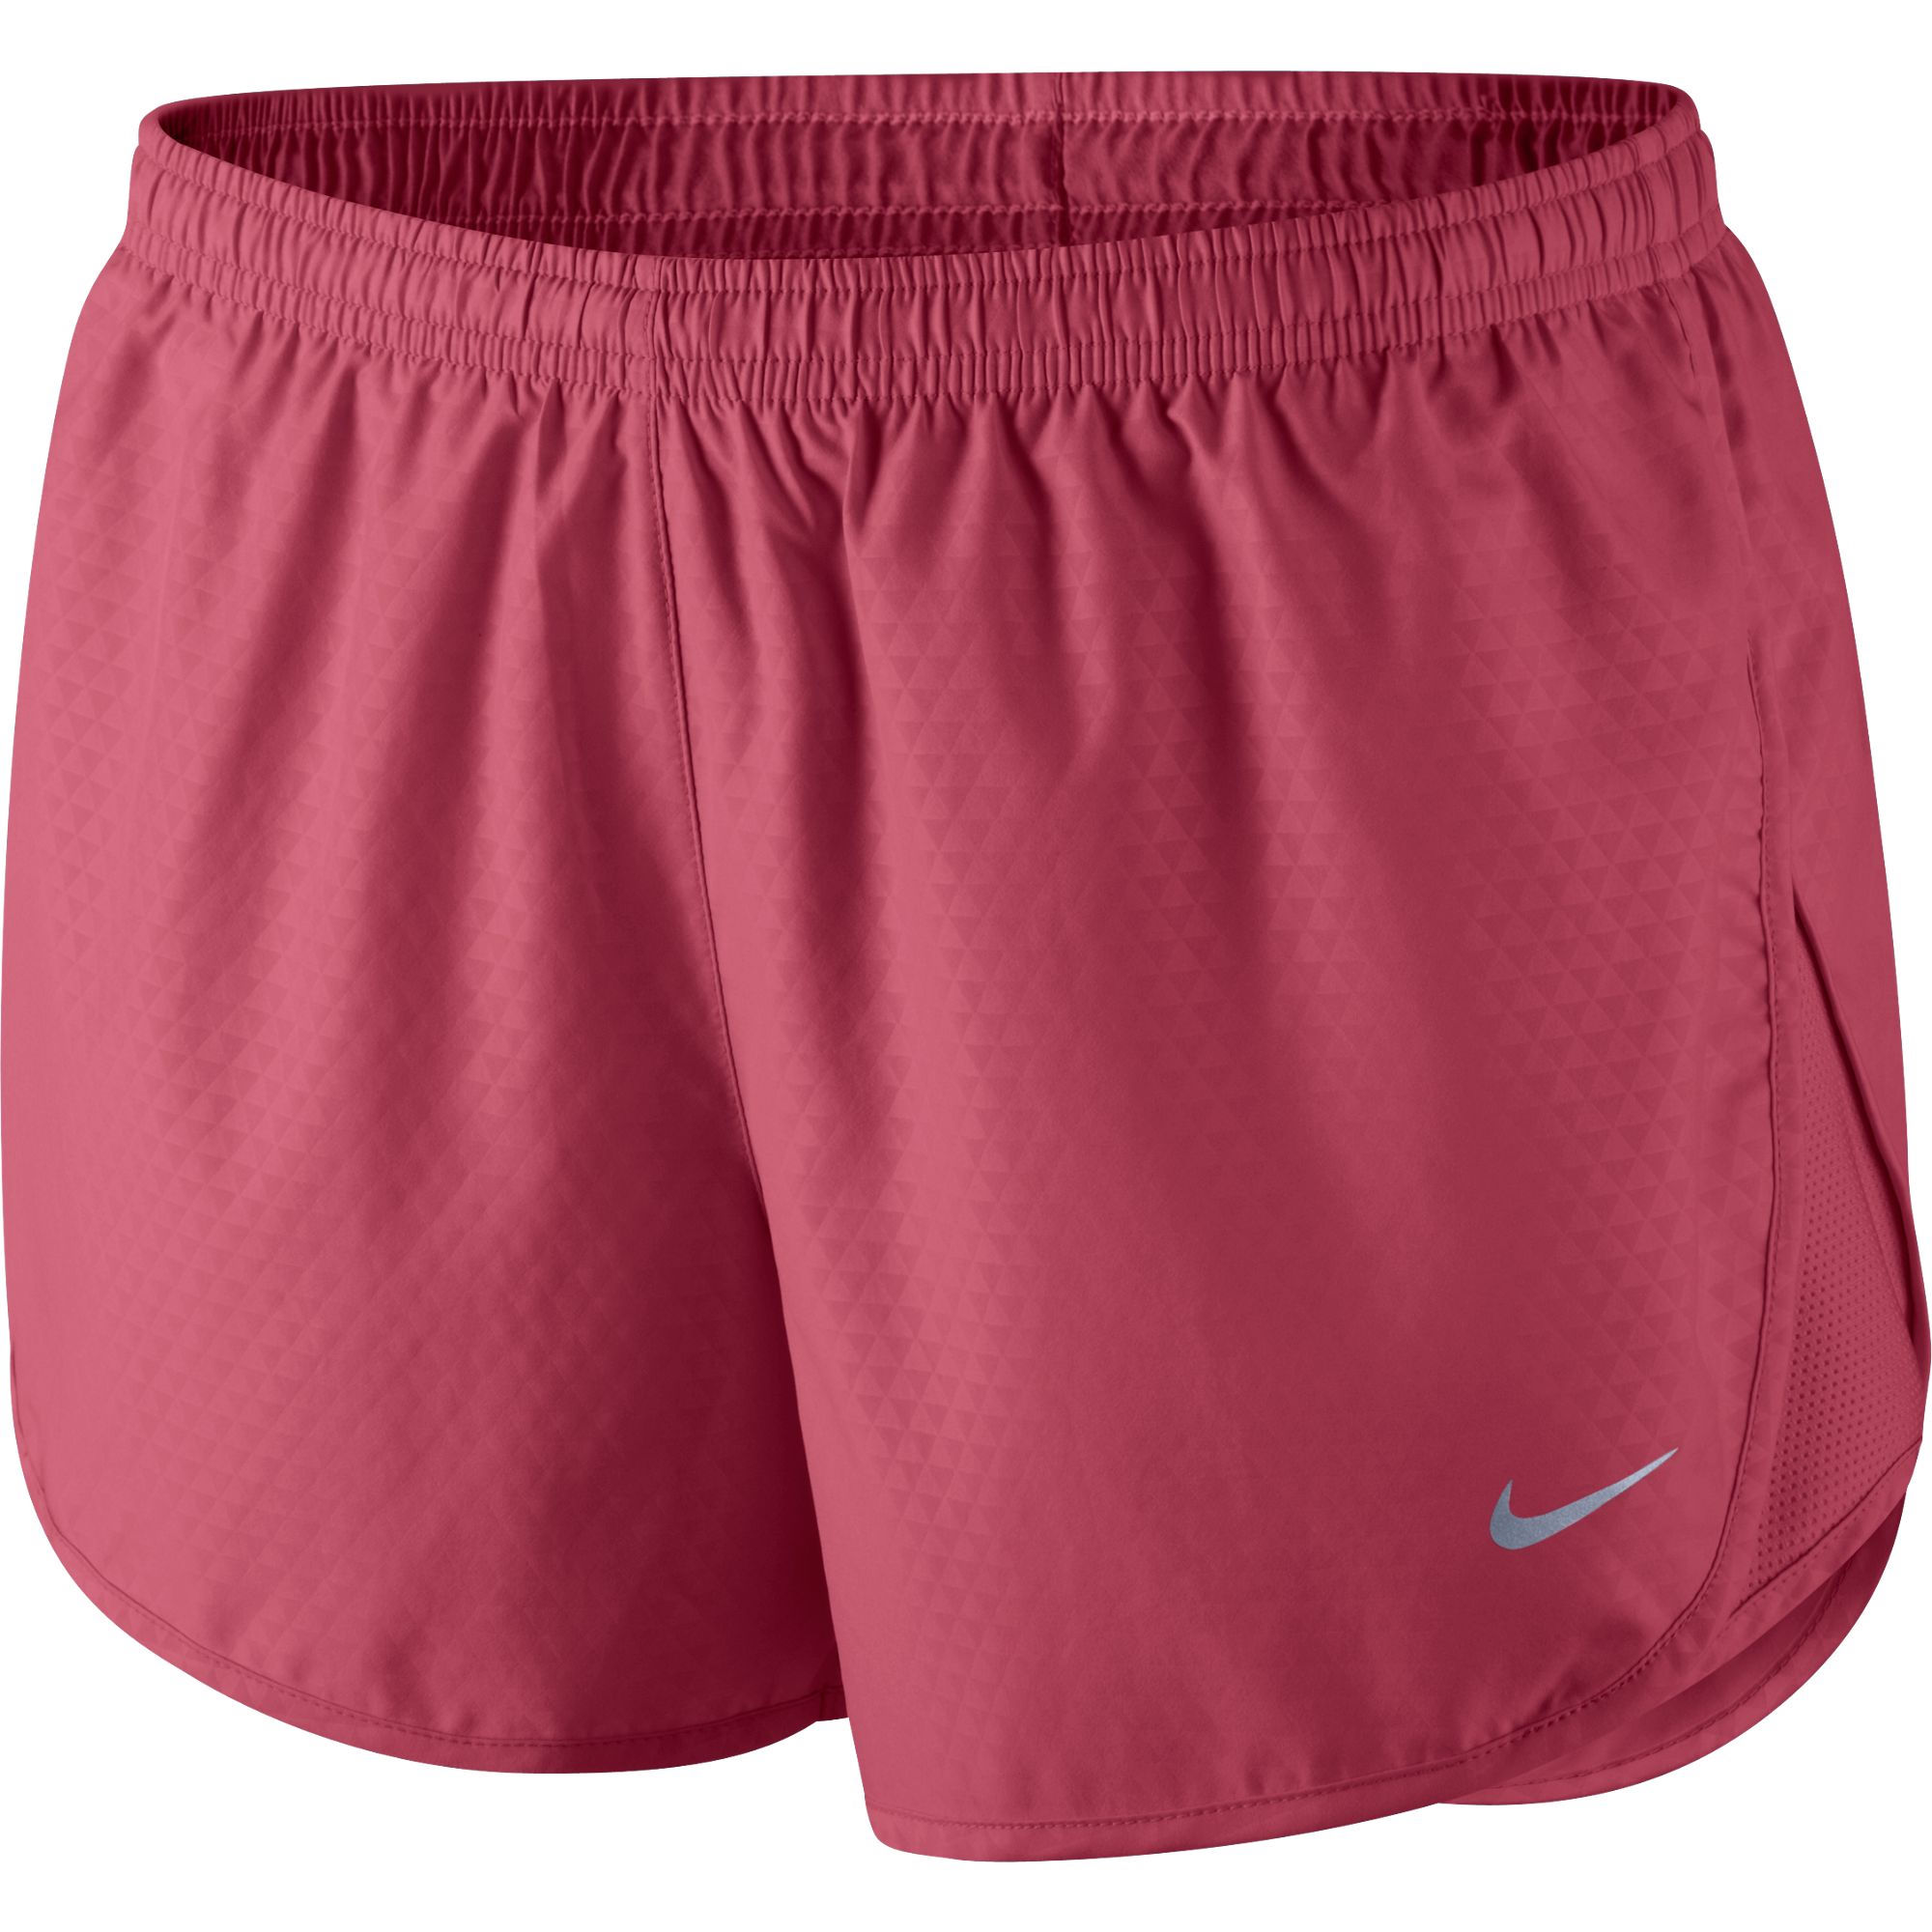 wiggle nike women 39 s mod tempo emboss run short su14 running shorts. Black Bedroom Furniture Sets. Home Design Ideas